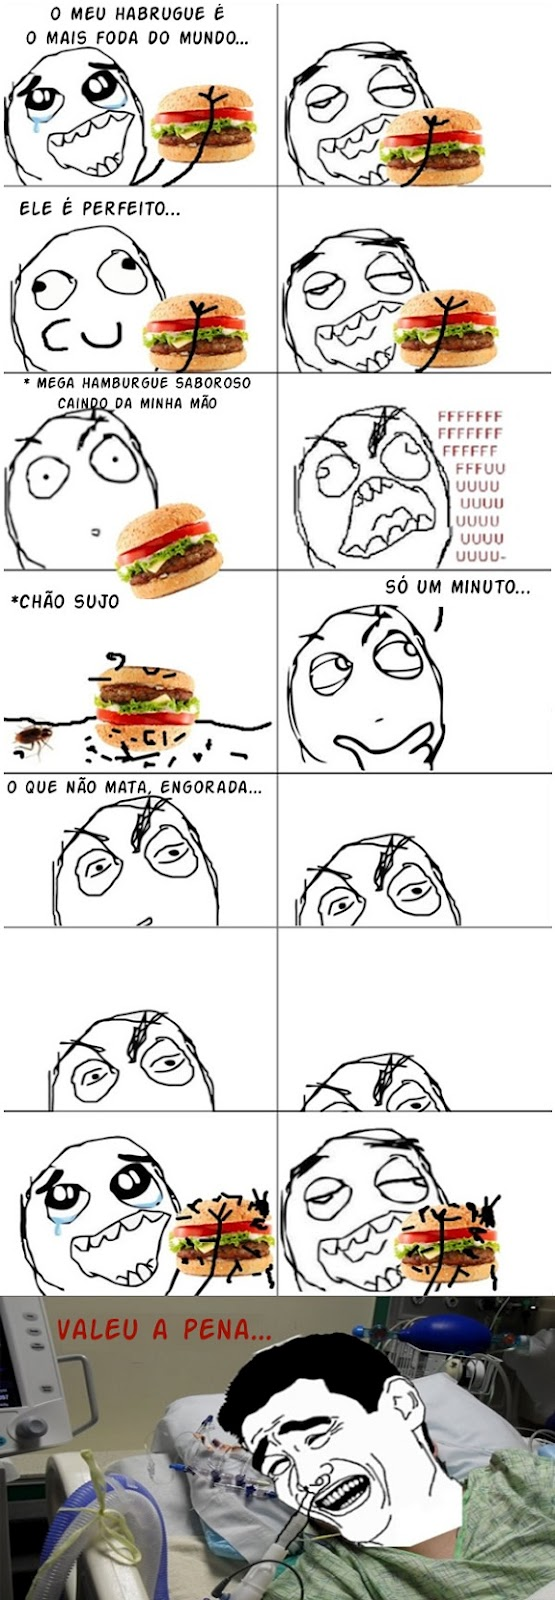 Tirinha do blog Vida de Meme: O hamburguer mais foda do mundo